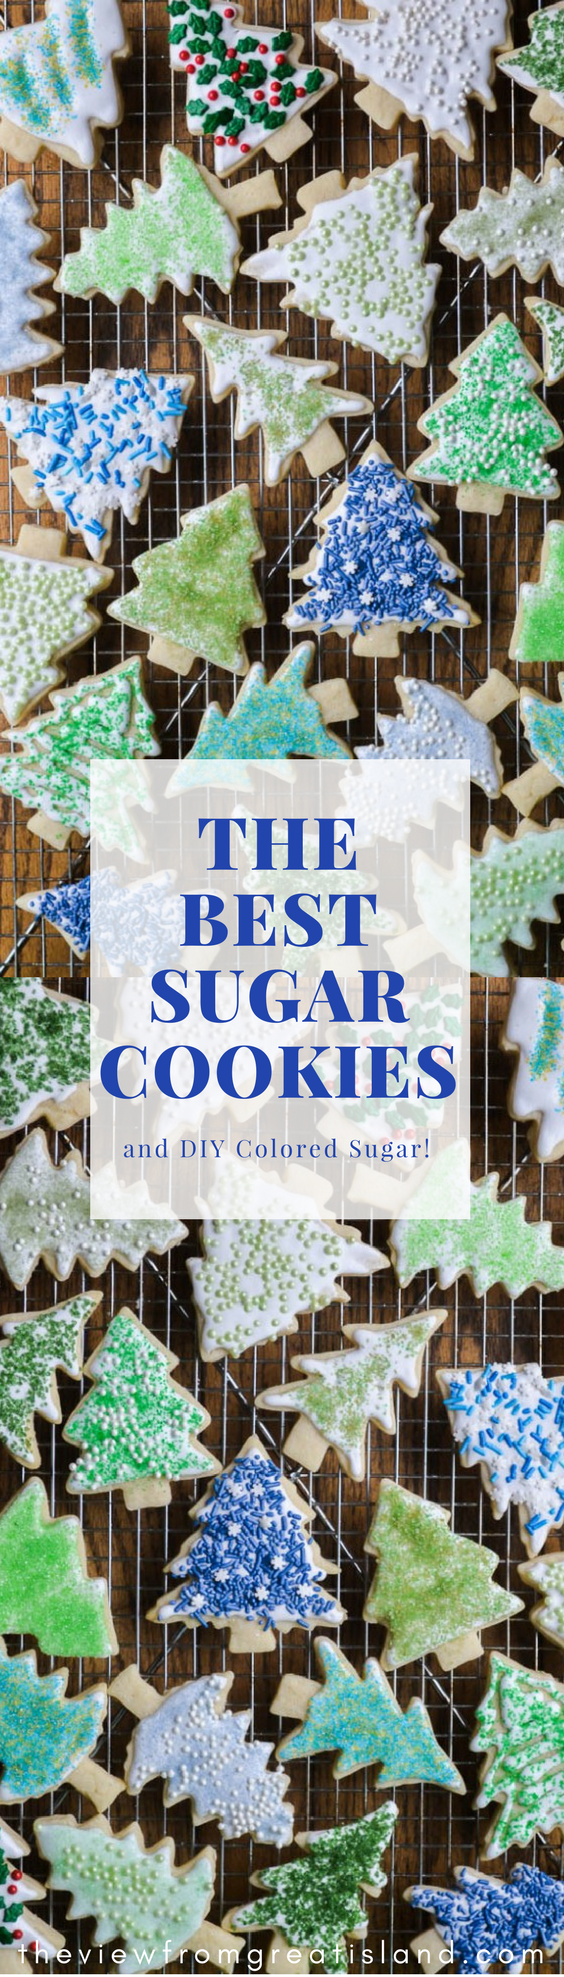 These quick and easy Holiday Sugar Cookies are such fun to decorate, and a joy to give out to friends and family this season. I show you how to make your own diy colored sugar, too, so you can get as creative as you want. #cookies #sugarcookies #bestsugarcookies #easysugarcookierecipe #cookierecipe #Christmascookierecipes #Christmascookies #frostedcookies #royalicing #cookiddecorating #sprinkles #coloredsugar #holidaycookies #cutoutcookies #dessert #foodgift